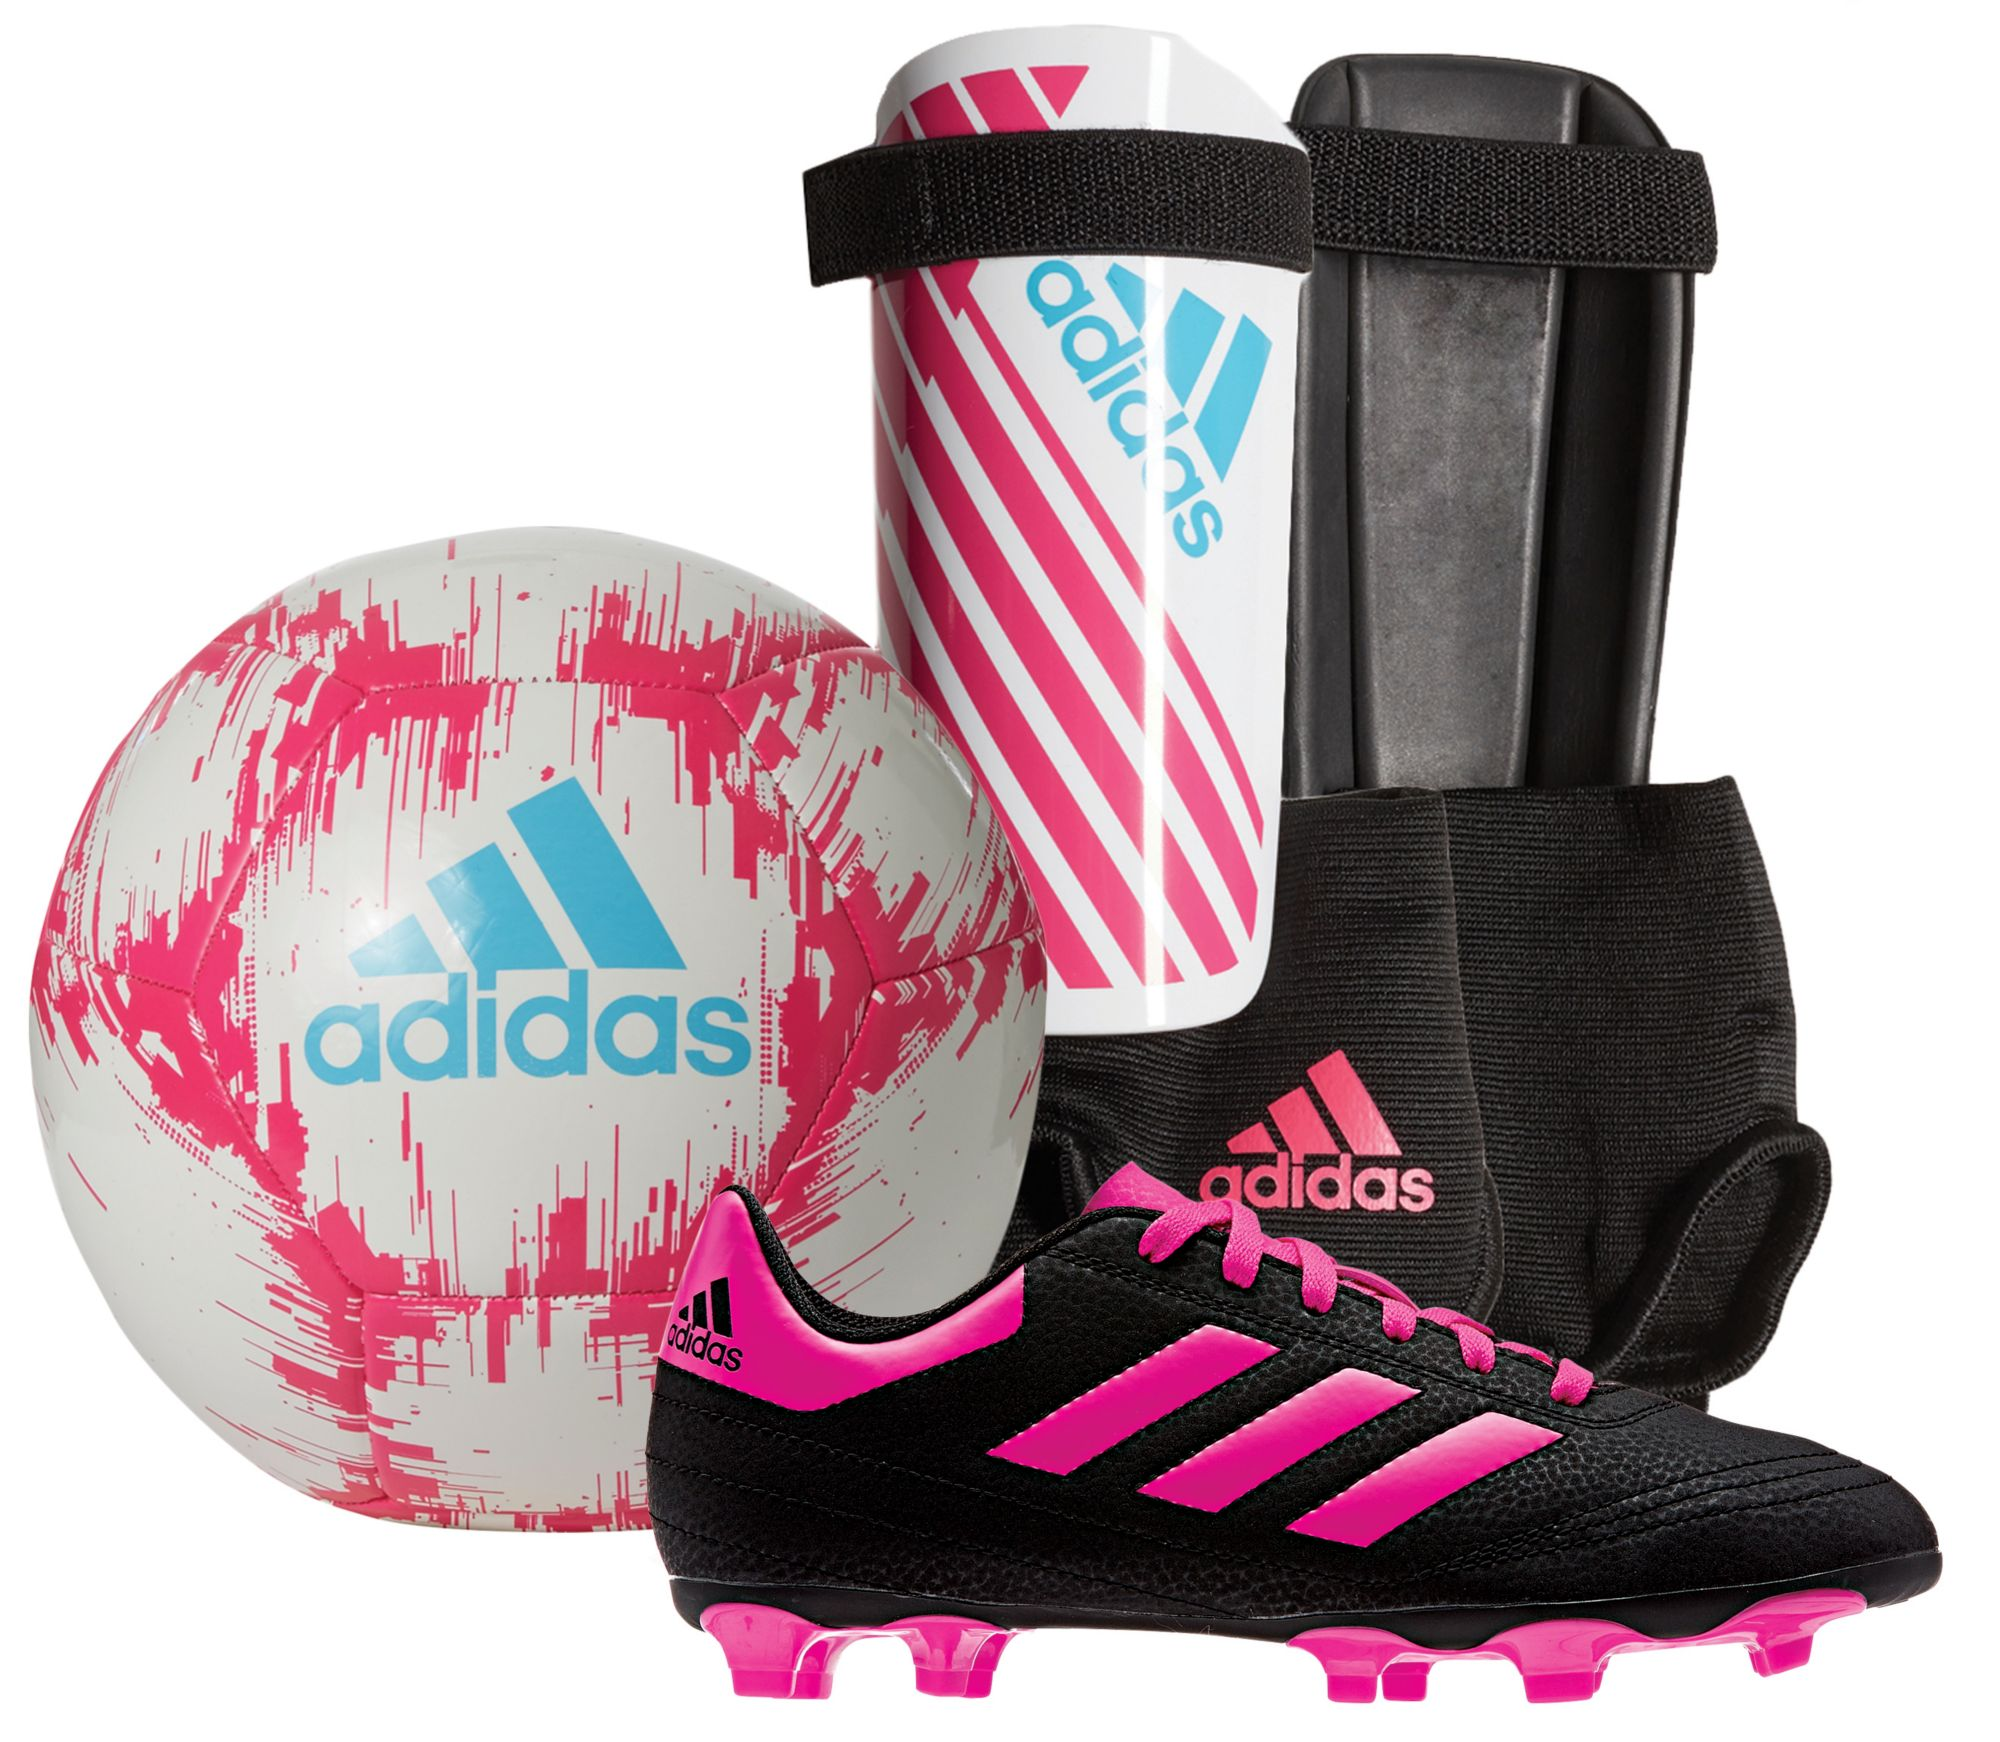 adidas Youth Soccer Starter Kit -White Pink